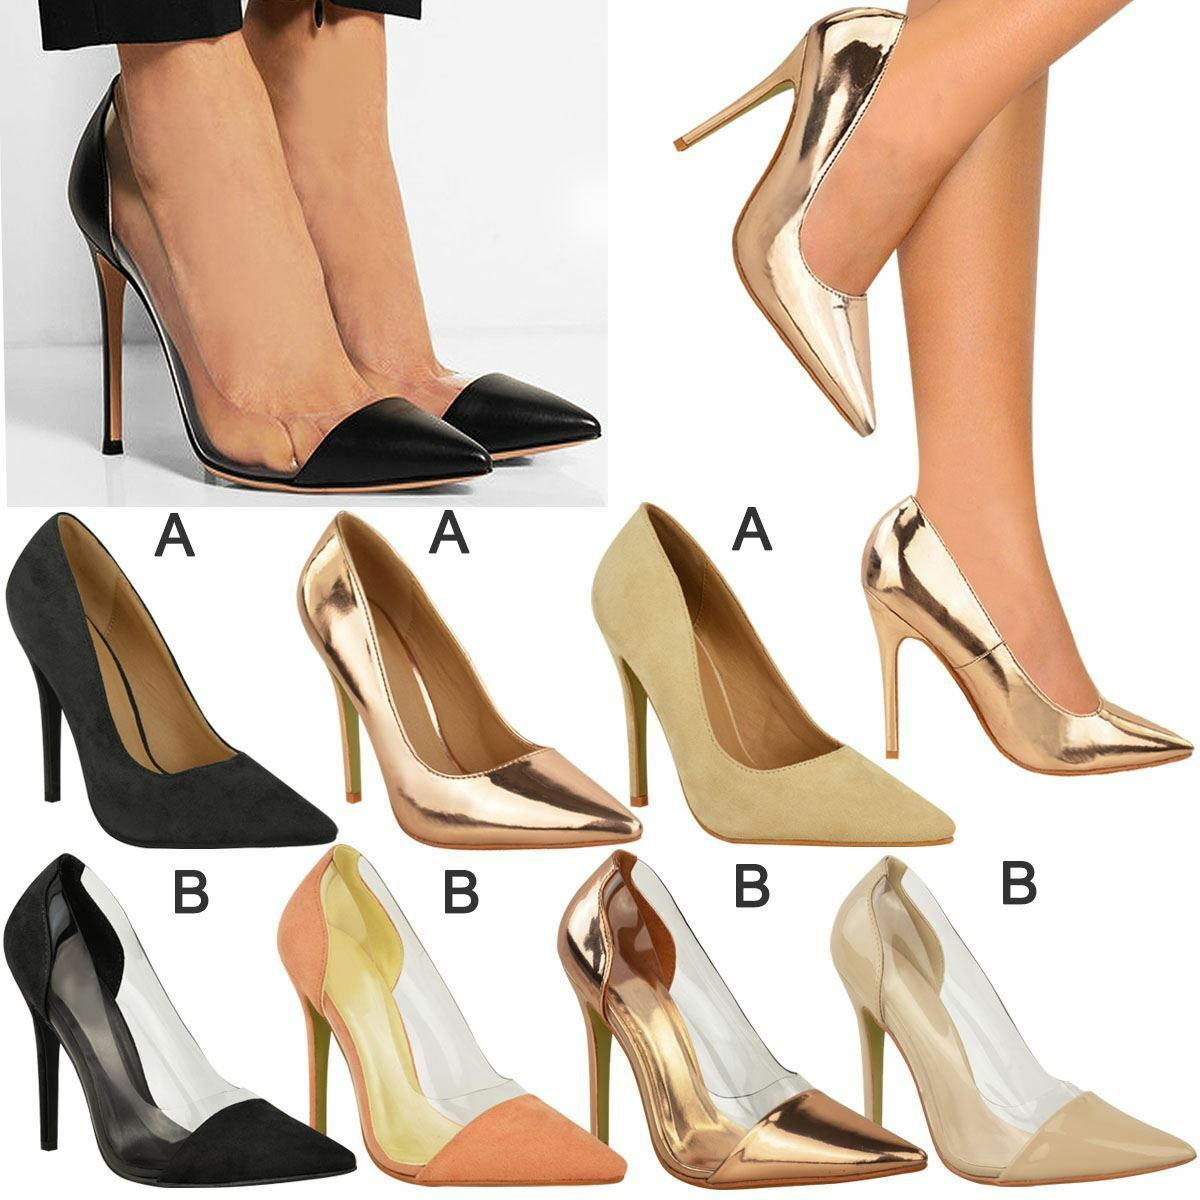 Ladies Sandals Womens Party High Heels Sandals Ladies Stiletto Court Shoes Office Work Sale New ea2cb7